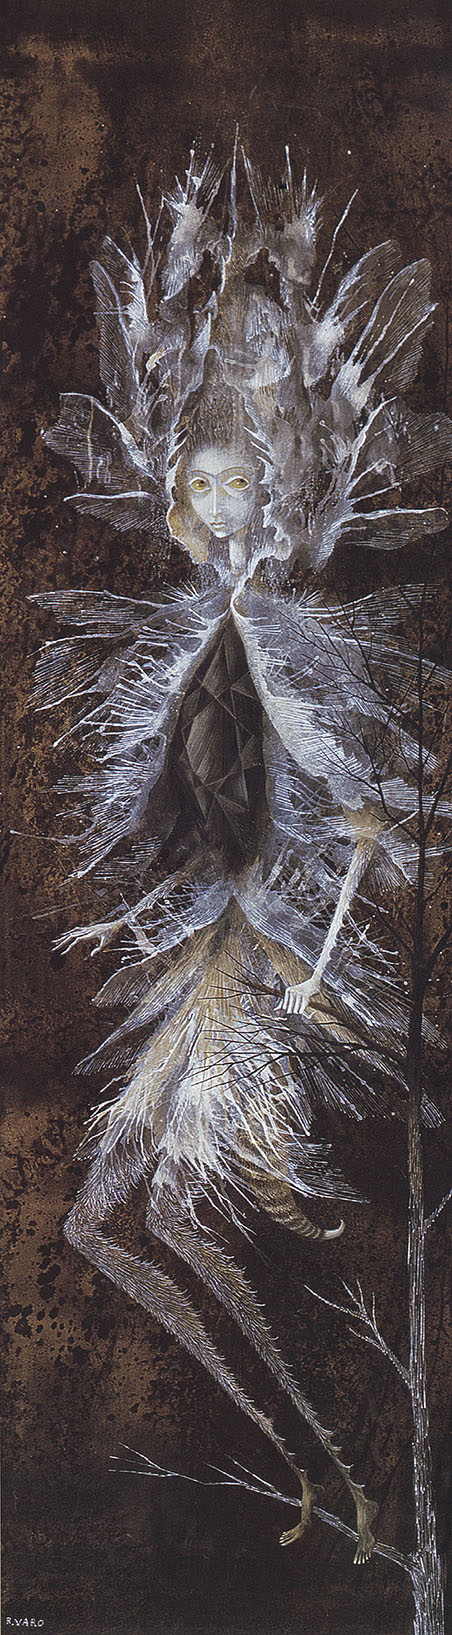 Remedios Varo,  La mujer libélula (Dragonfly Woman),  1960, Oil and gouache on masonite, 26 x 8 inches (65 x 19 cm)